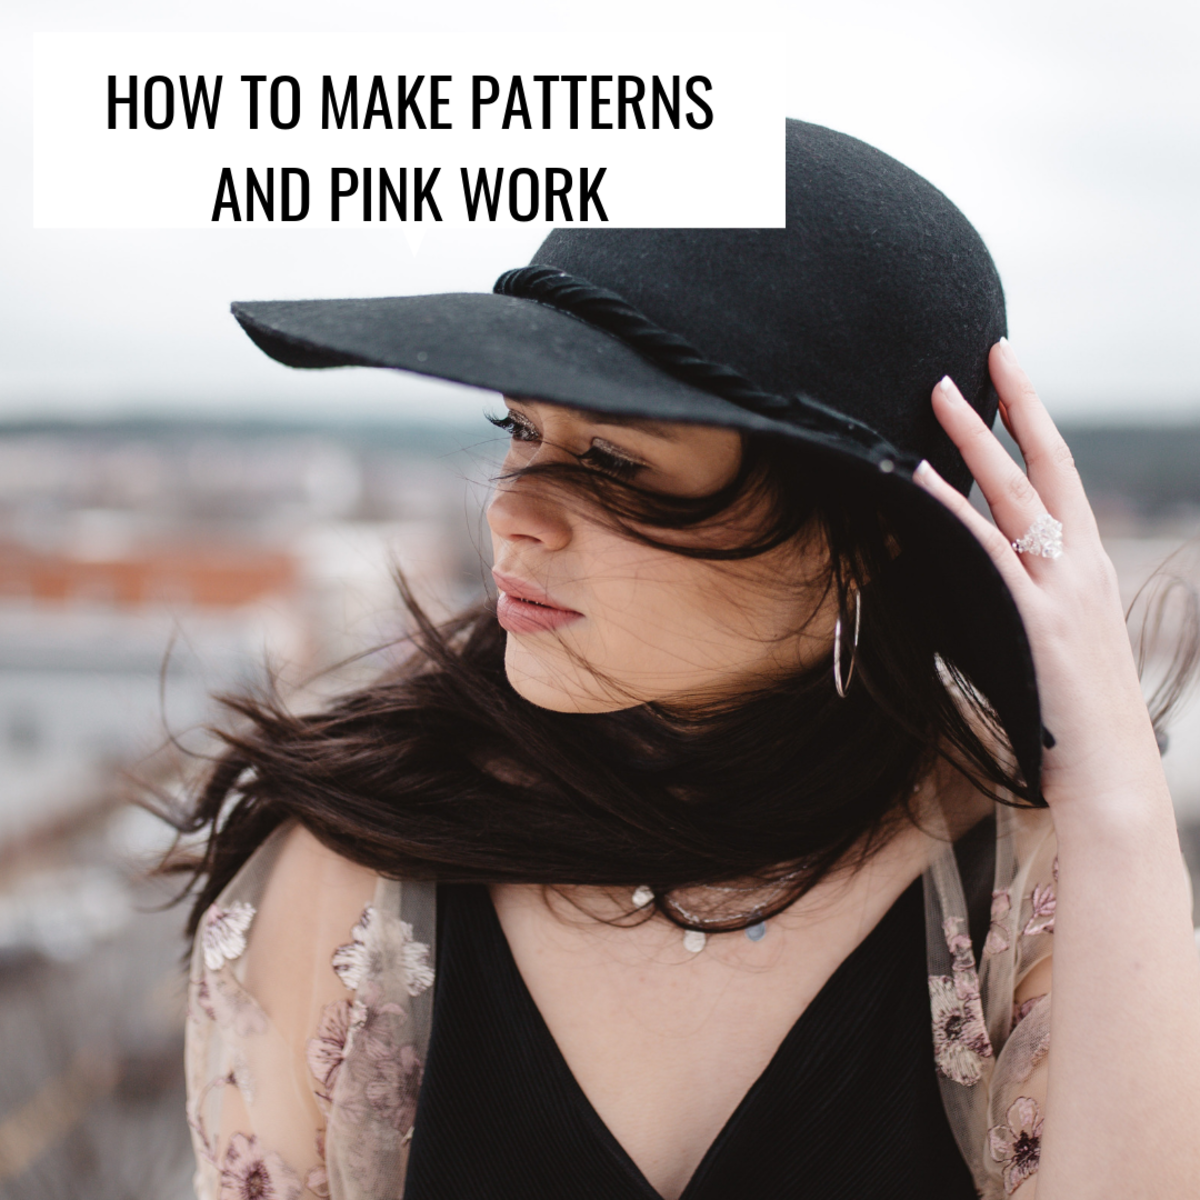 Lighter colors can work well if used as a scarf or to offset dark clothing.